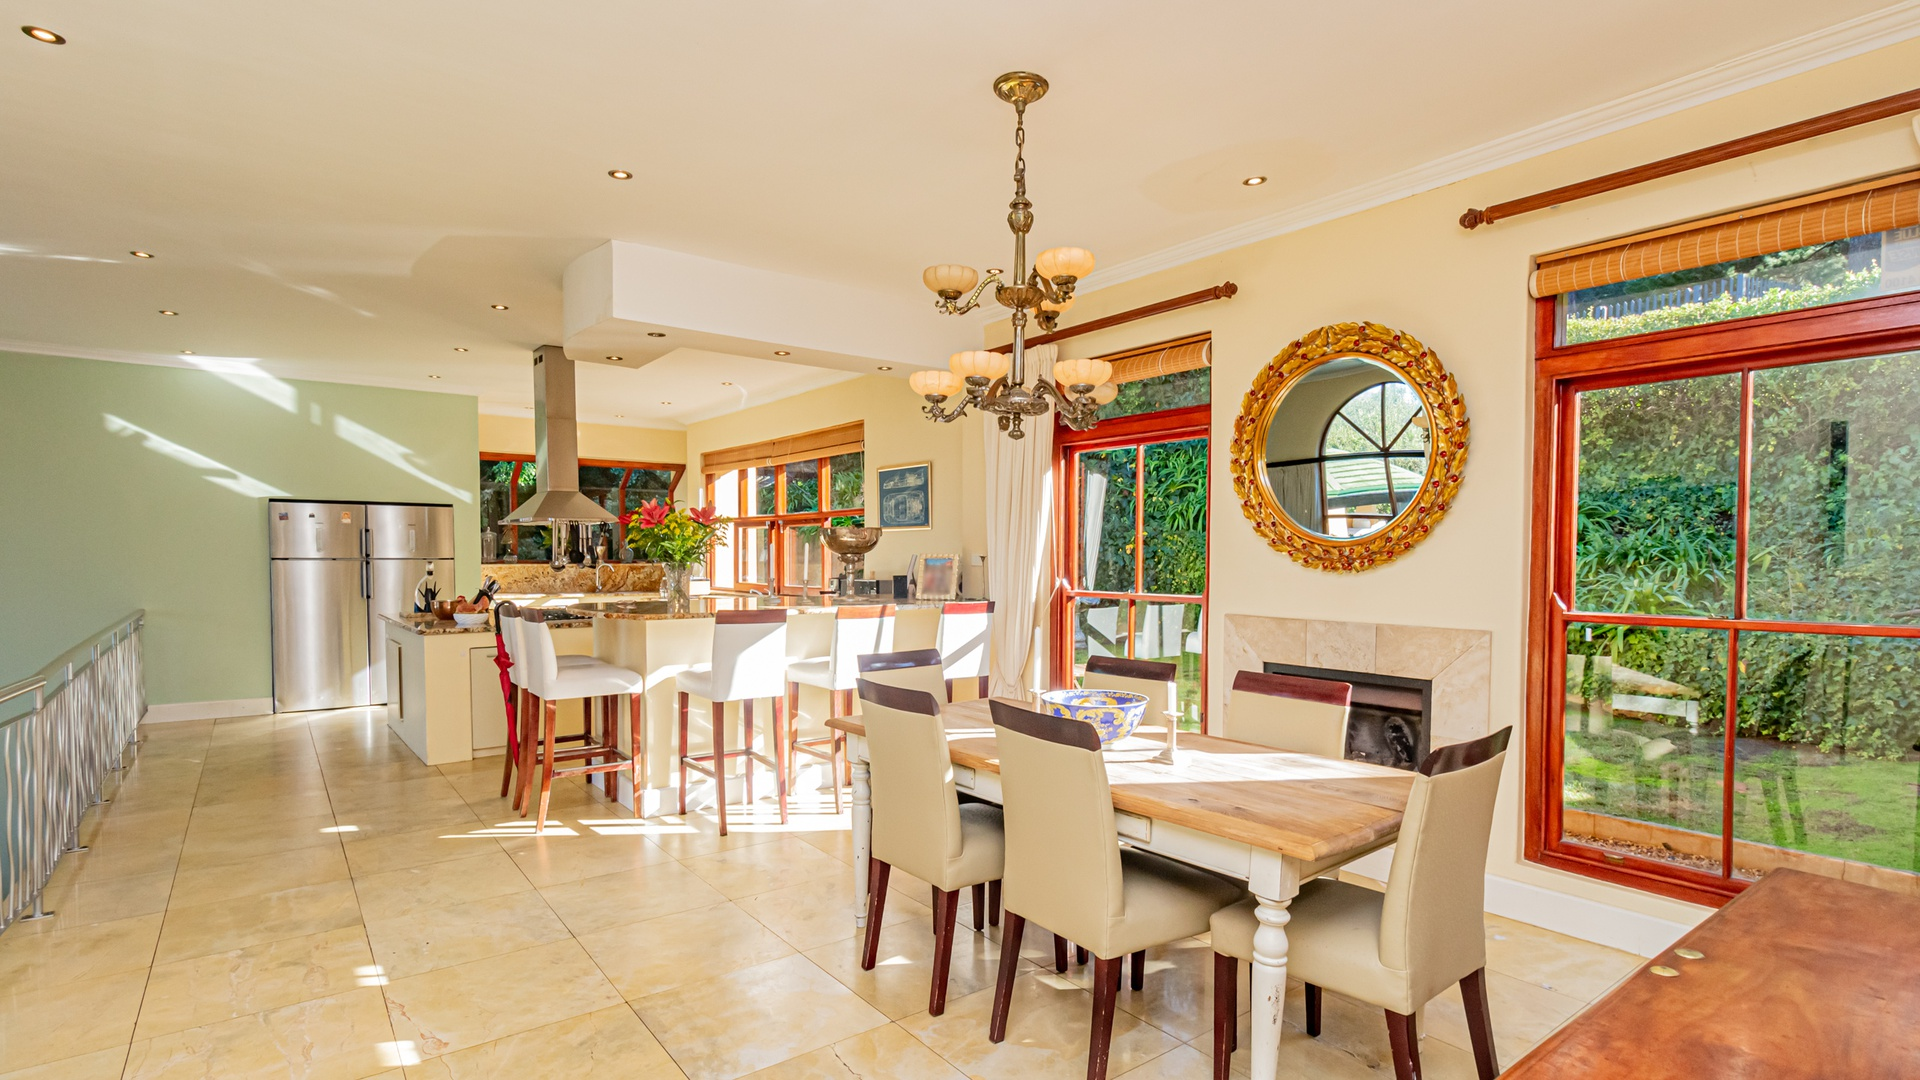 House in Hout Bay - Dining area